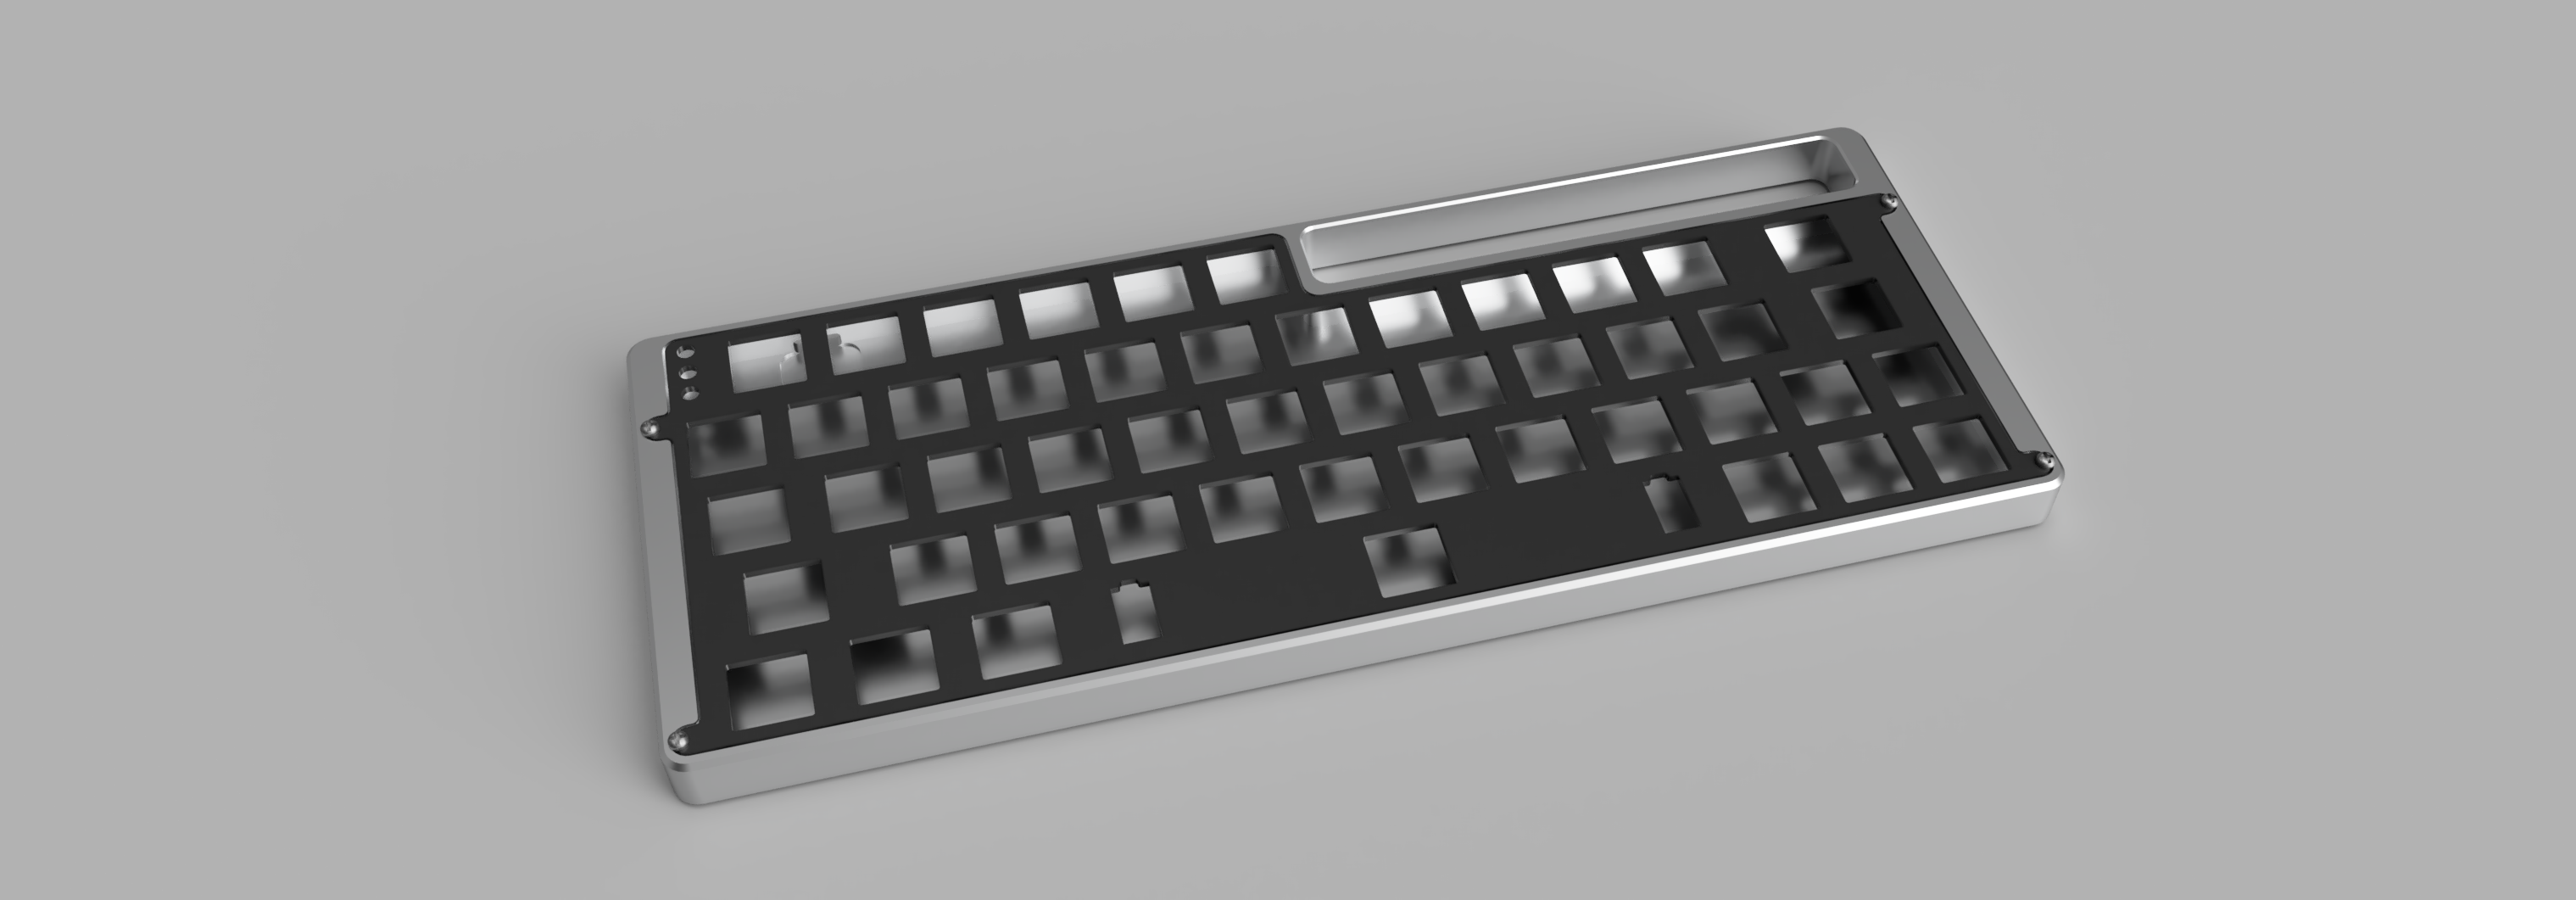 Render of V4N4G0N R3 case in silver anodized aluminum with a black FR4 plate